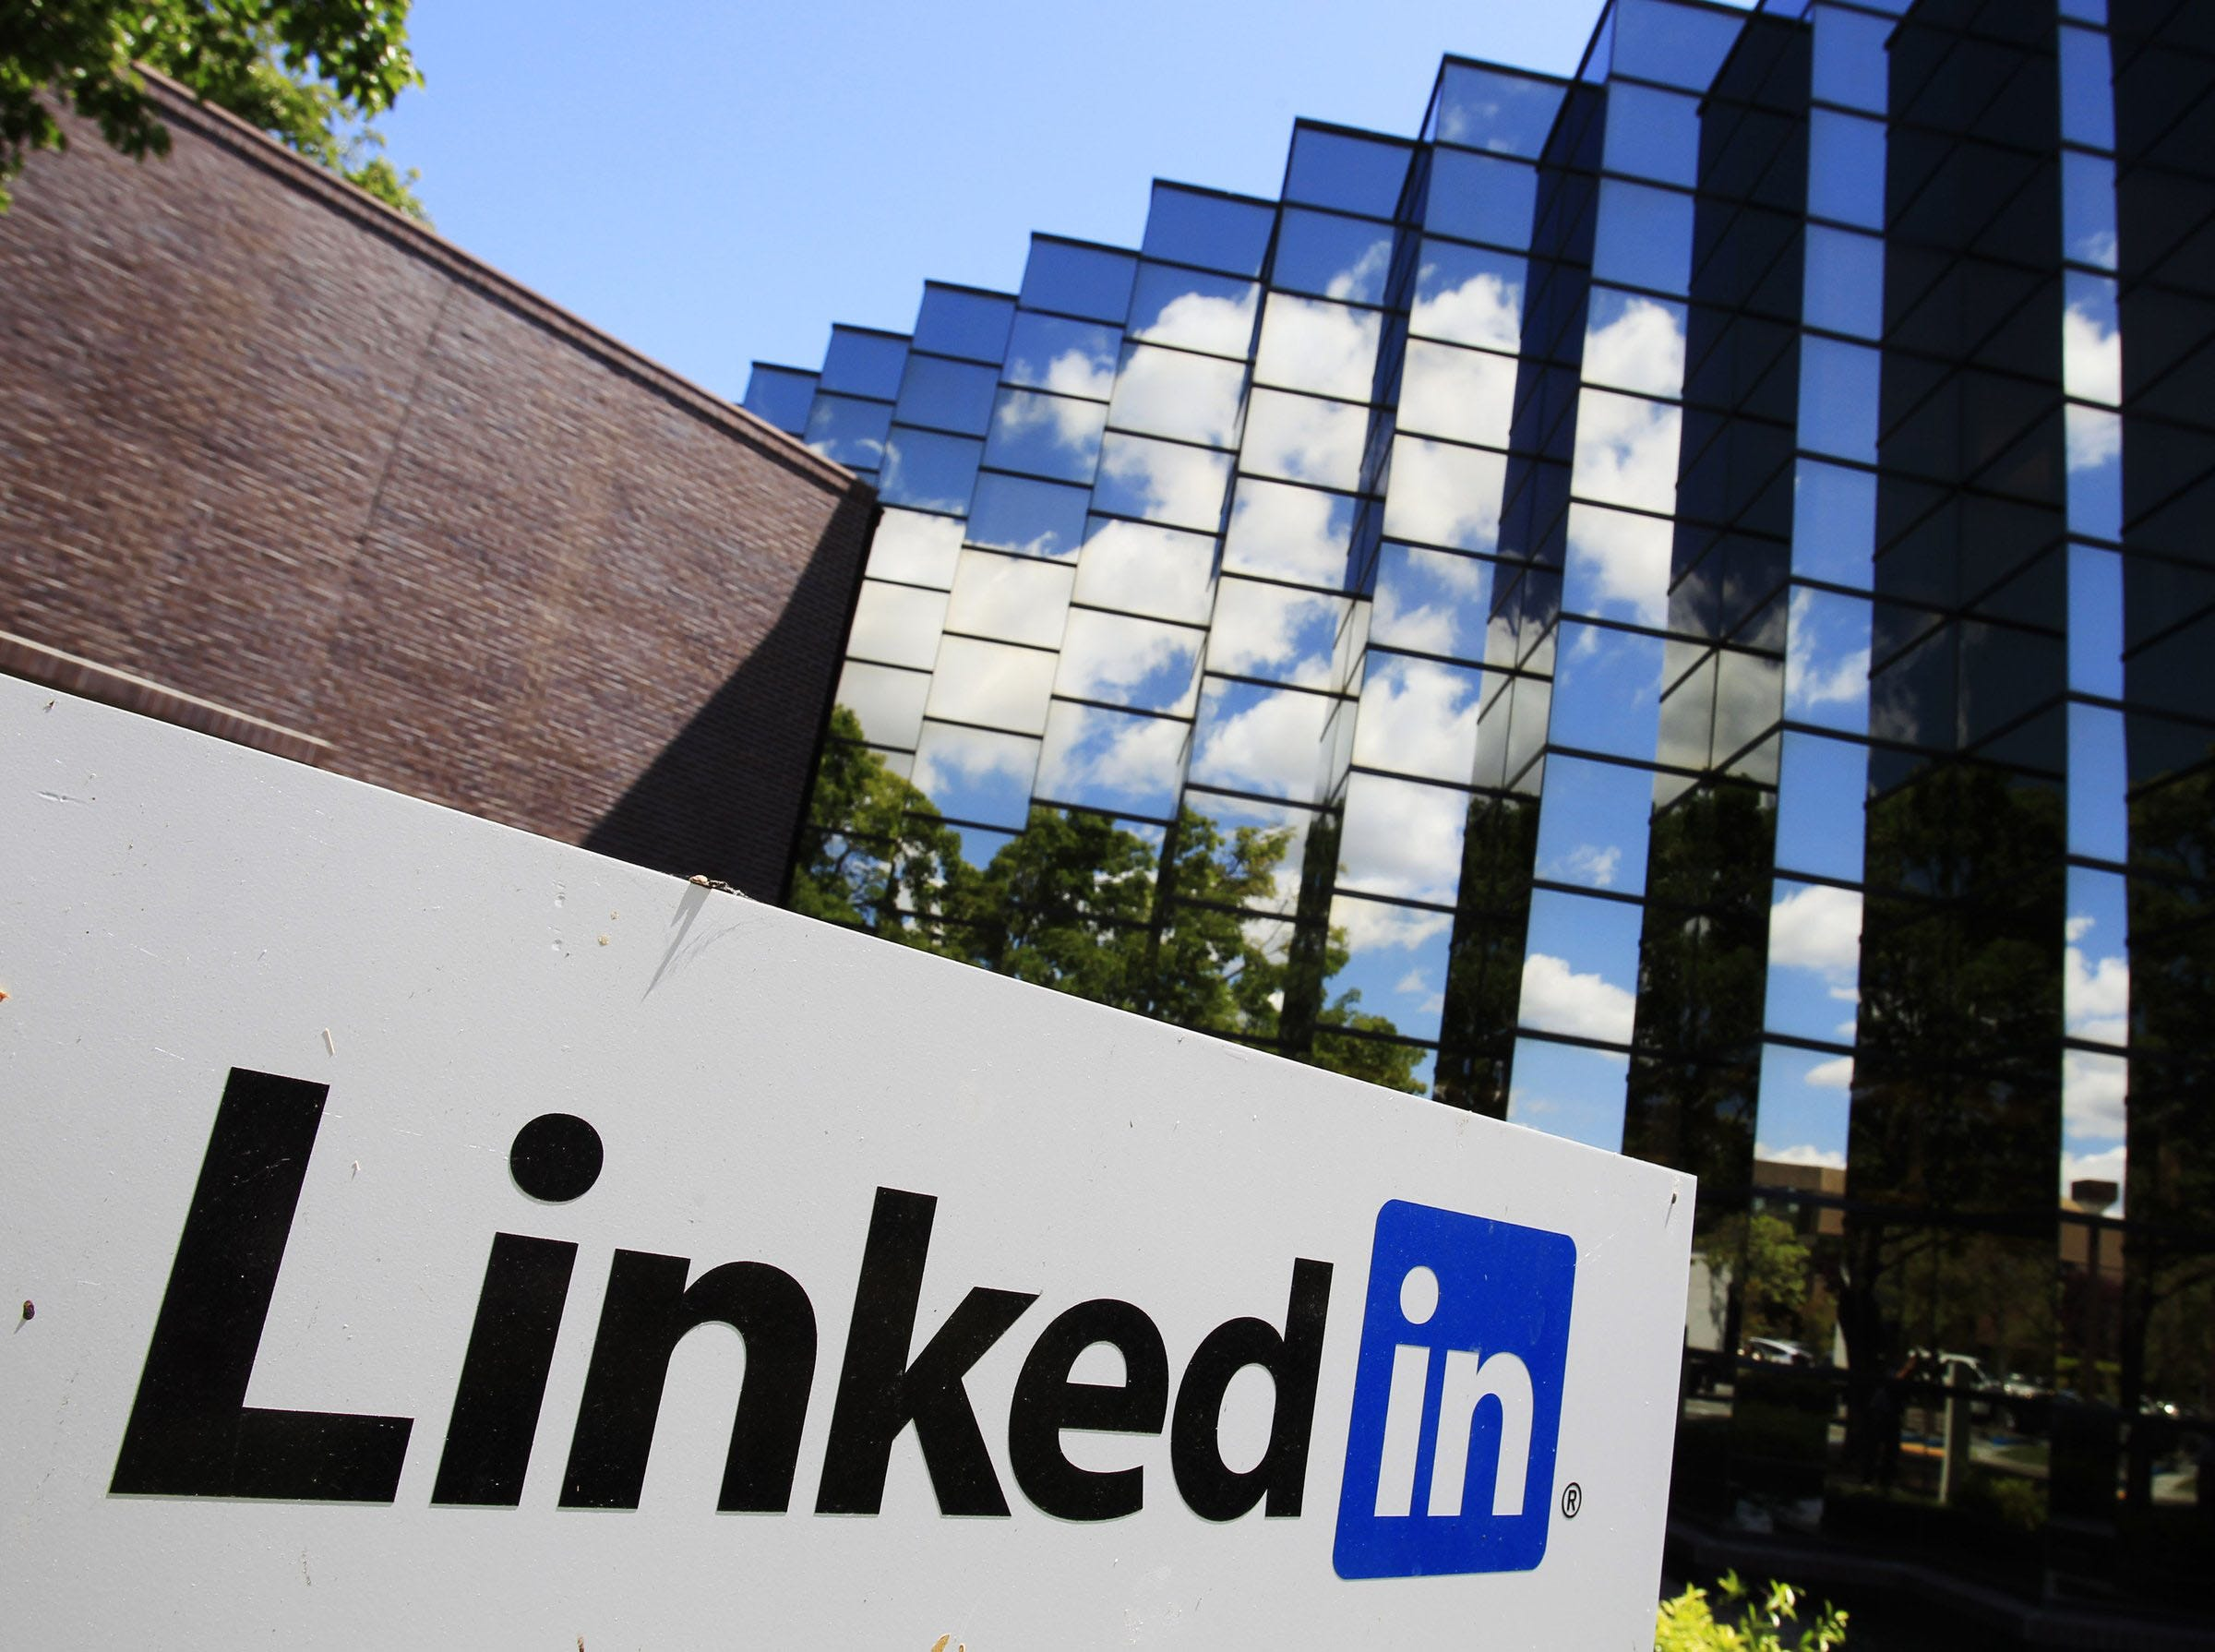 Interviewing for jobs? LinkedIn lets you get advice from friends first